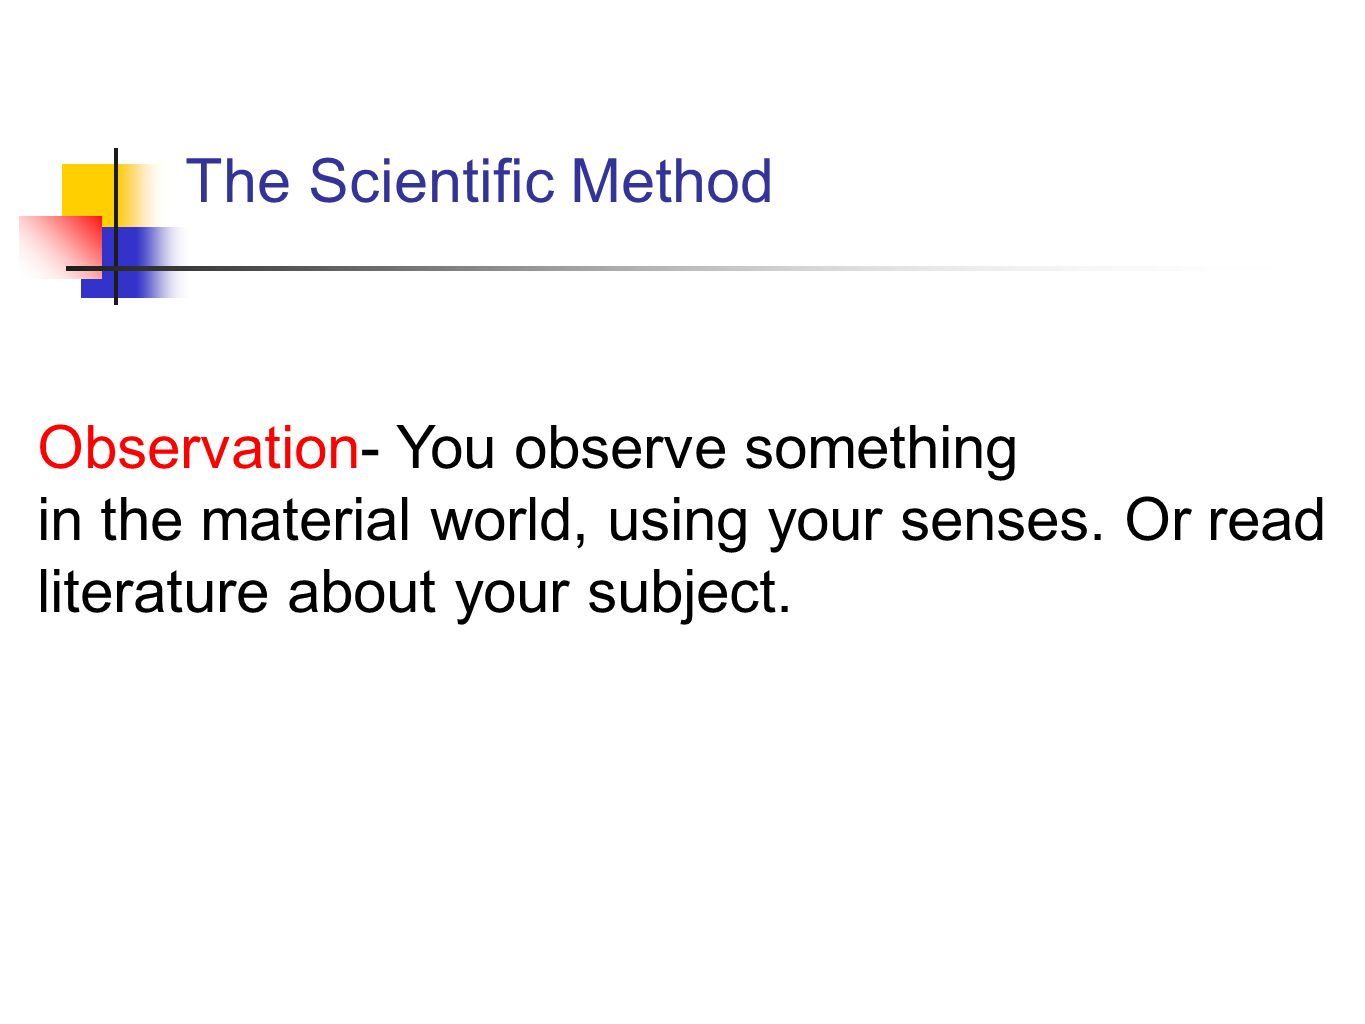 The Scientific Method Observation- You observe something in the material world, using your senses.